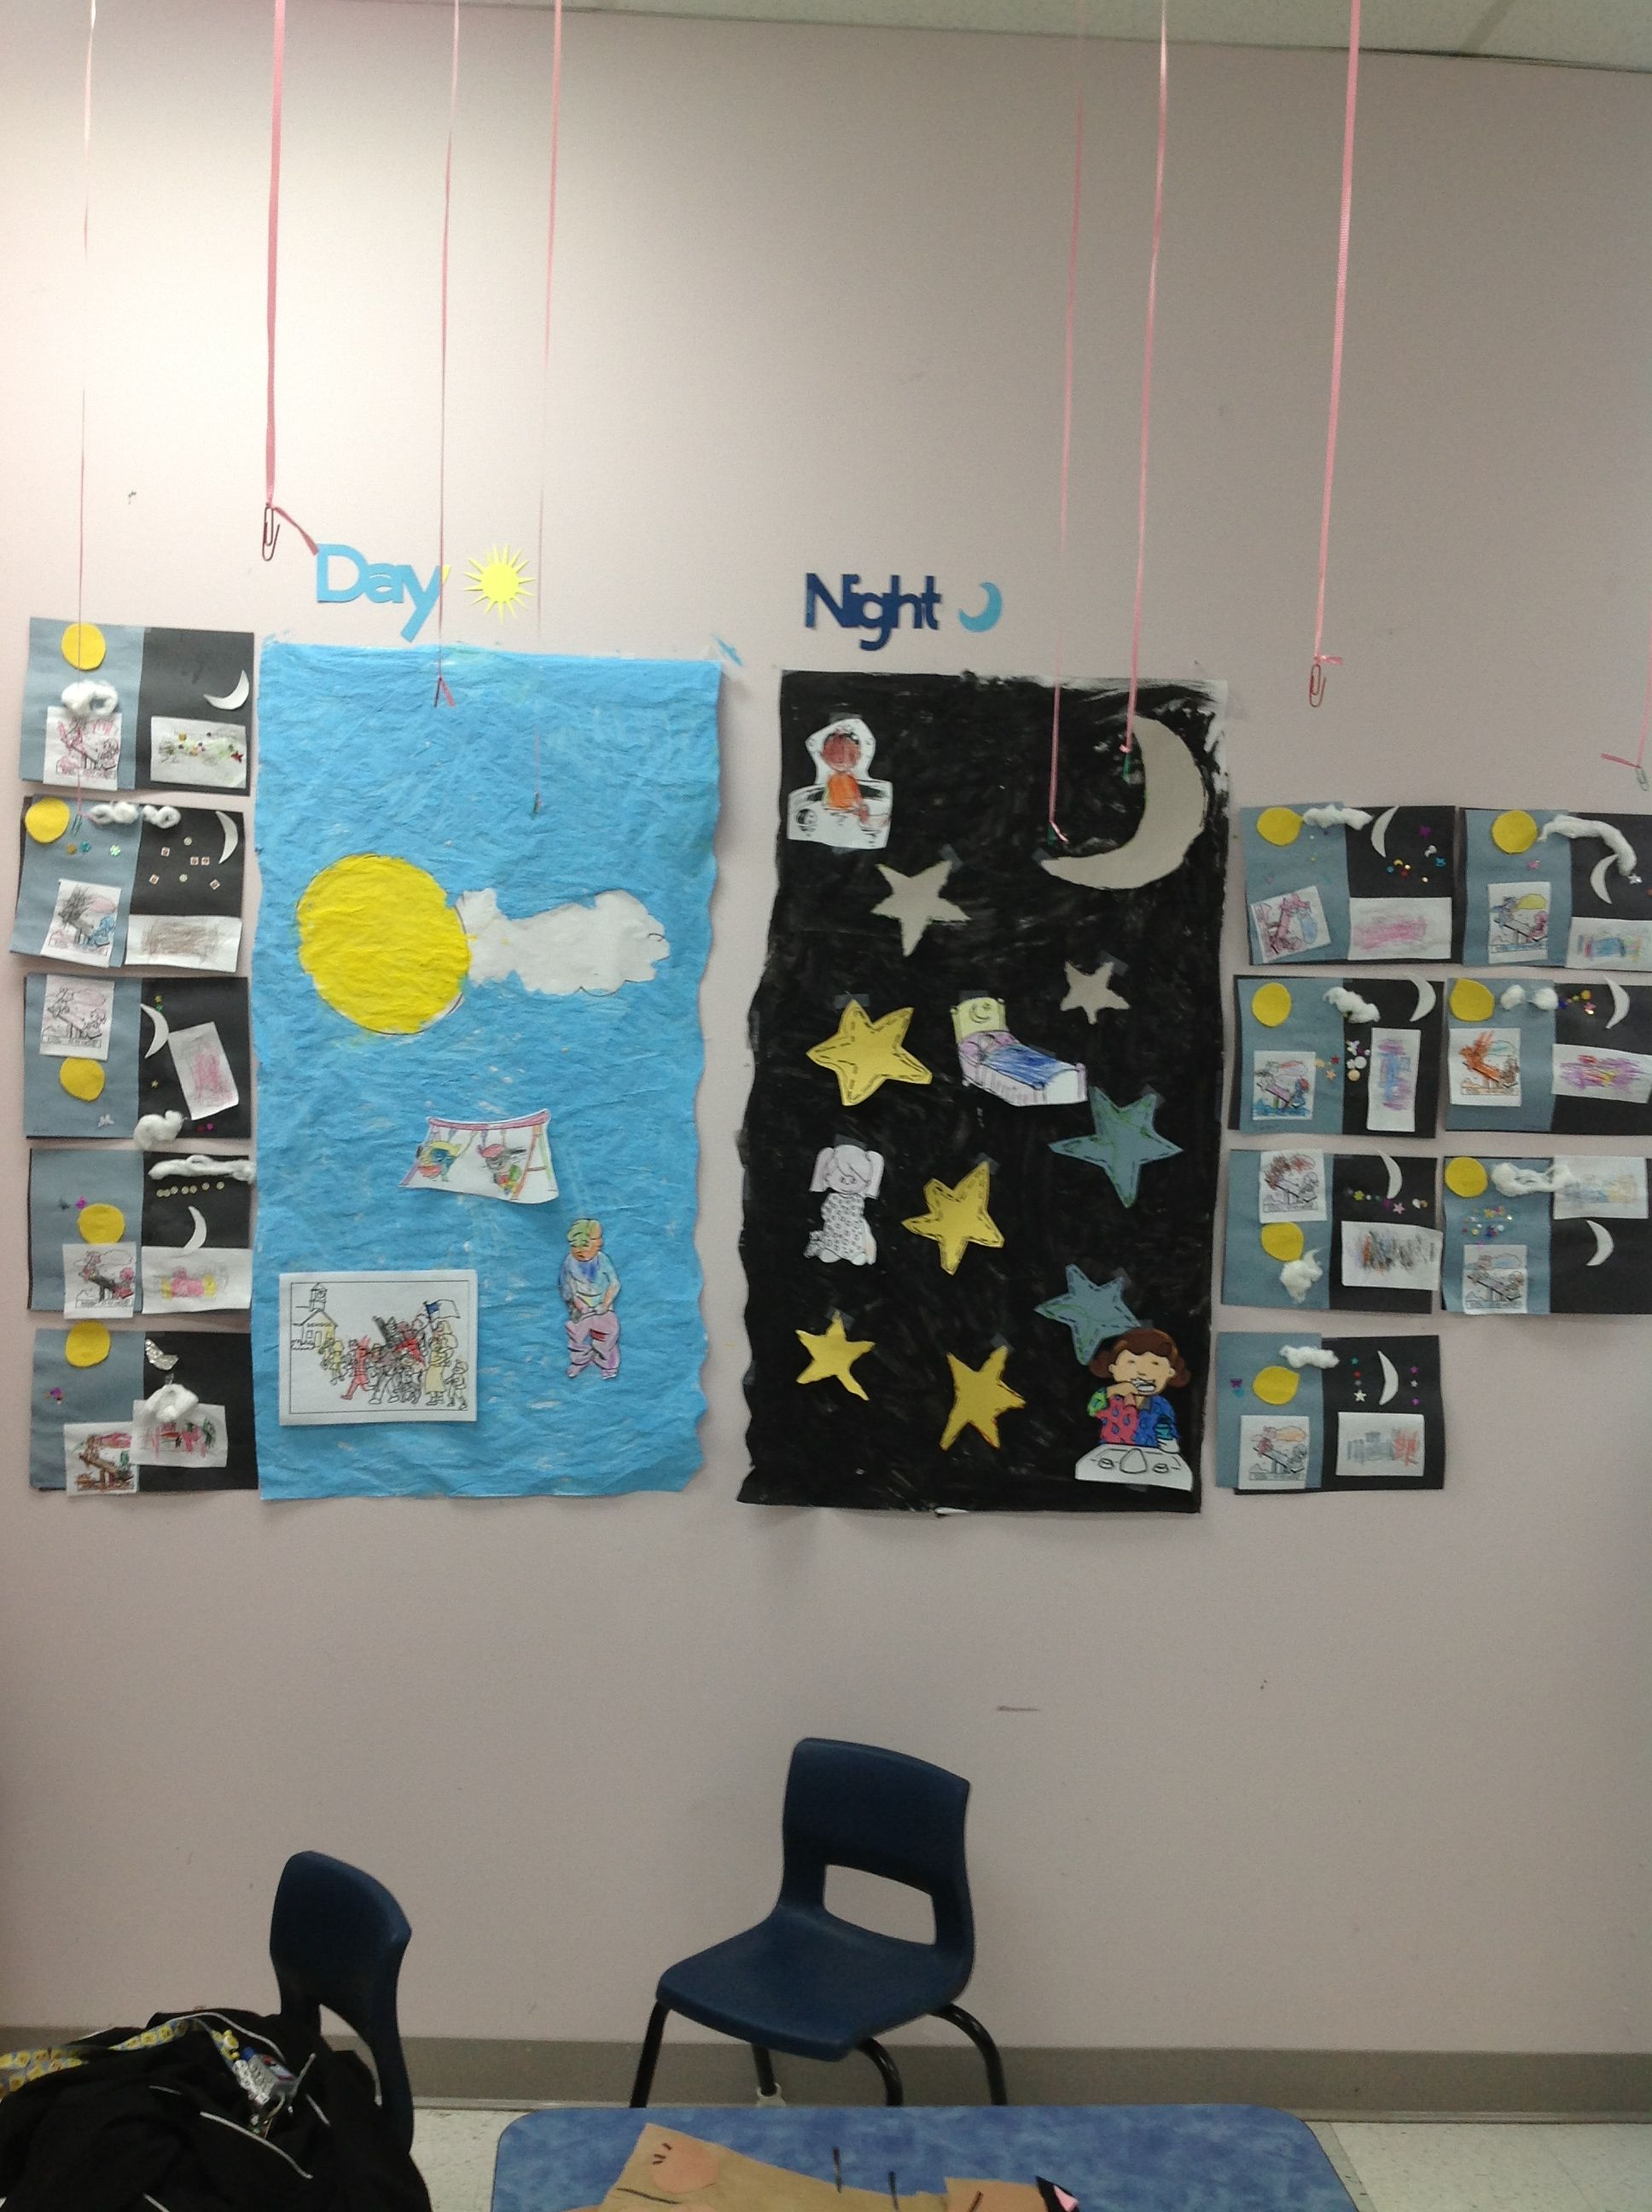 Theme Day And Night Mural Collective Painting Of Day And Night Sky Tracing And Cutting Out